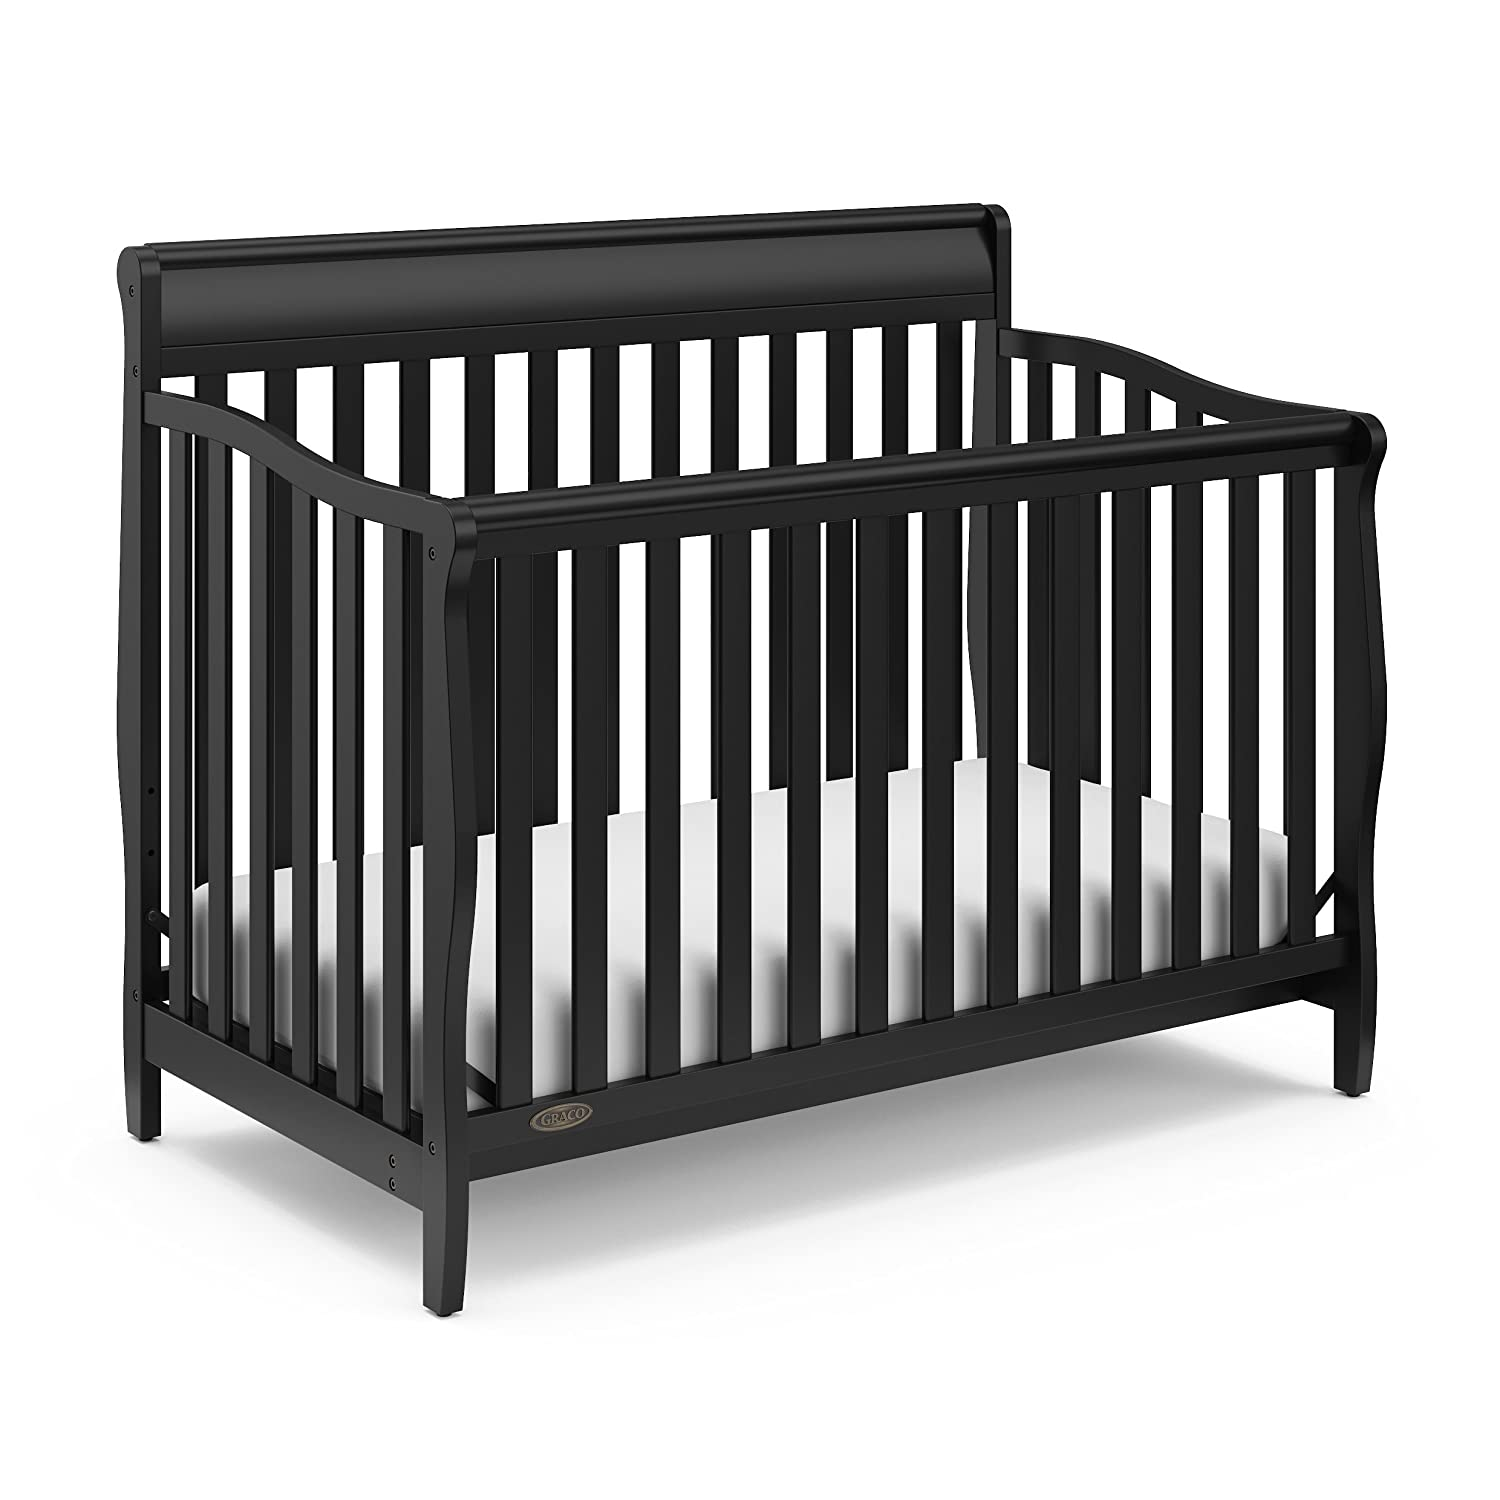 Graco Stanton 4-in-1 Convertible Crib, Black Storkcraft 04530-66B